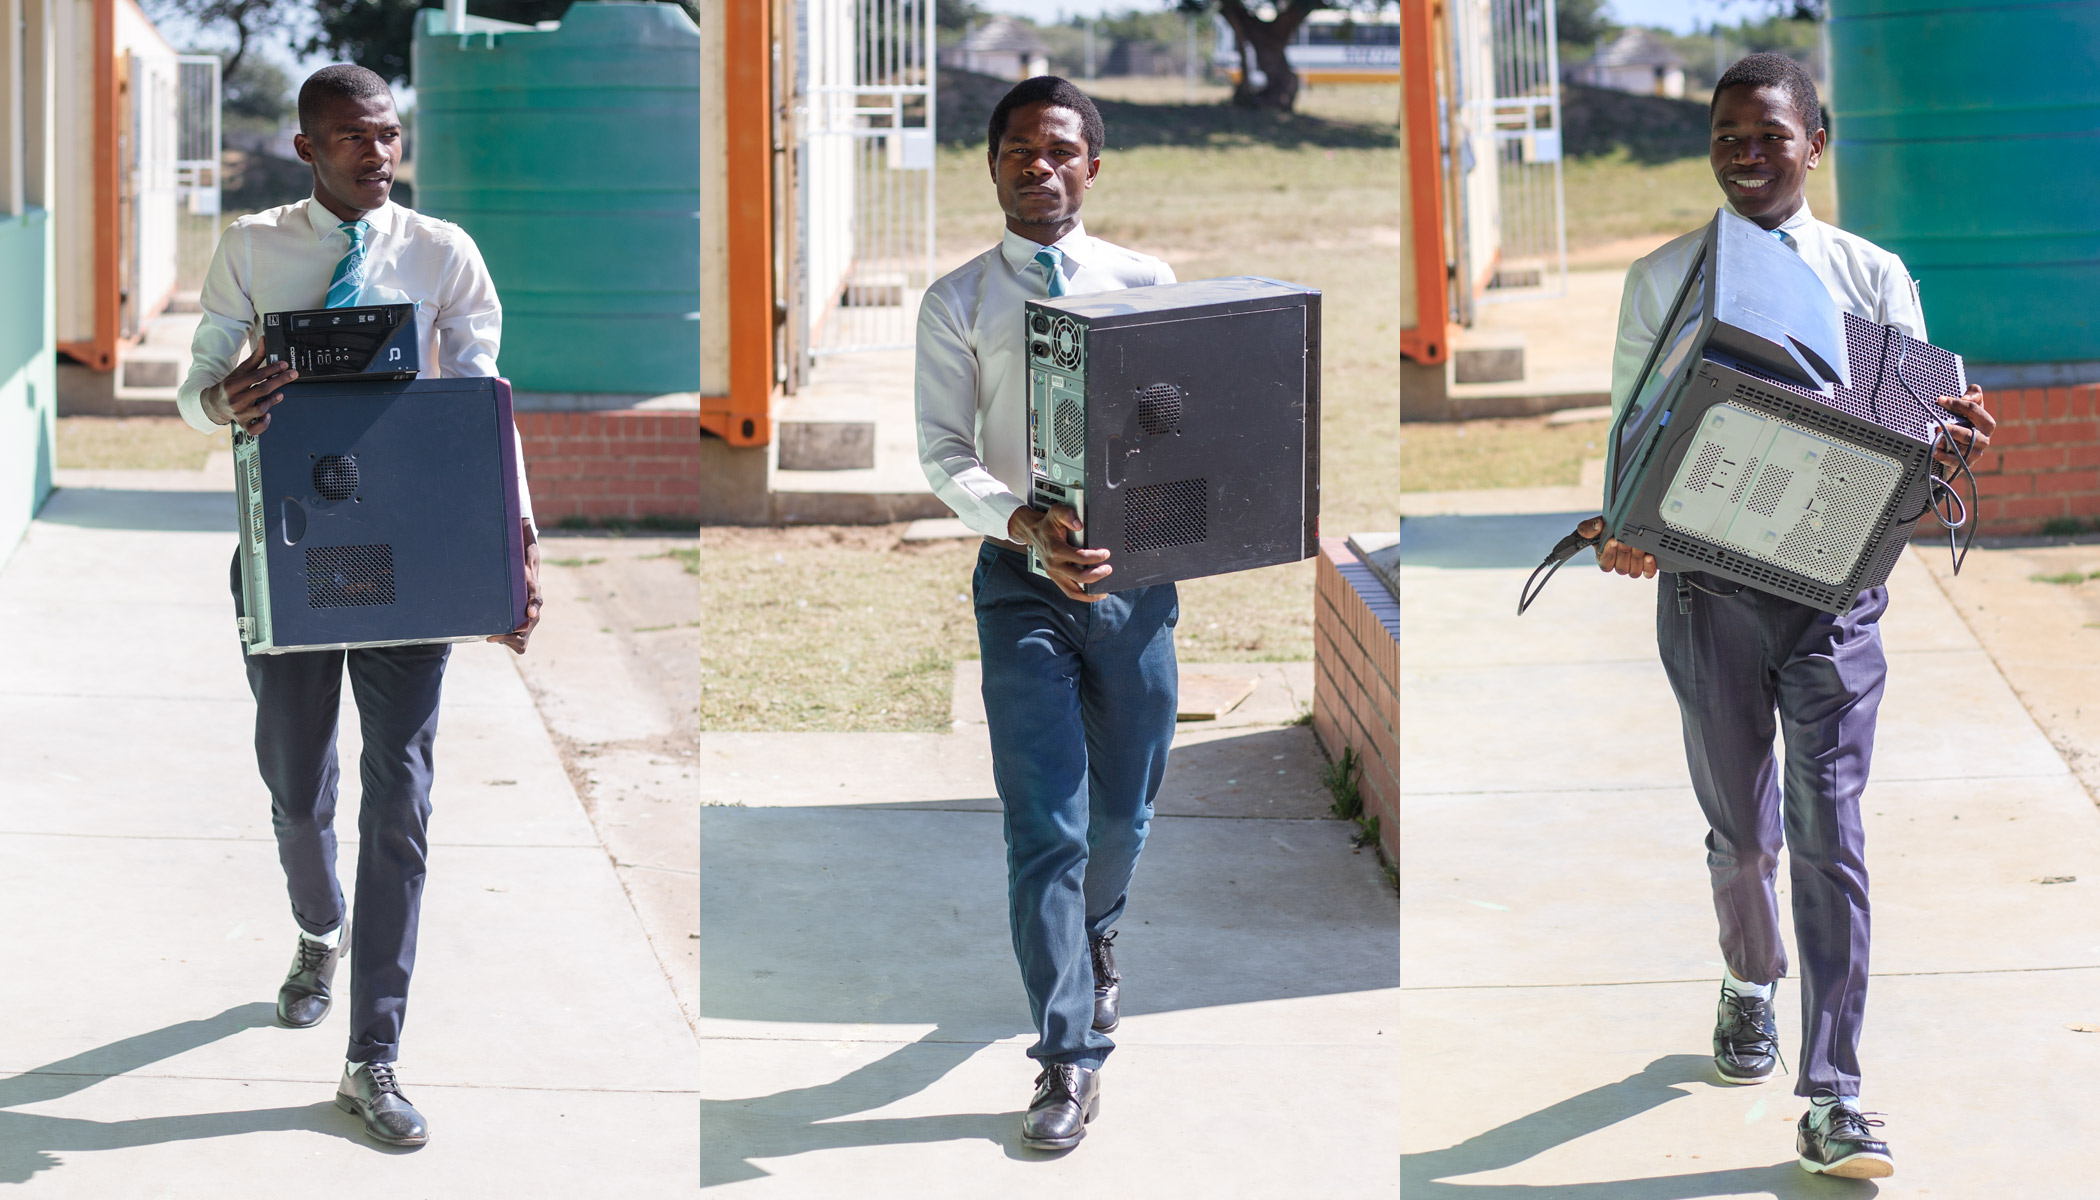 Learners carrying some computers at Gilonki Secondary School.